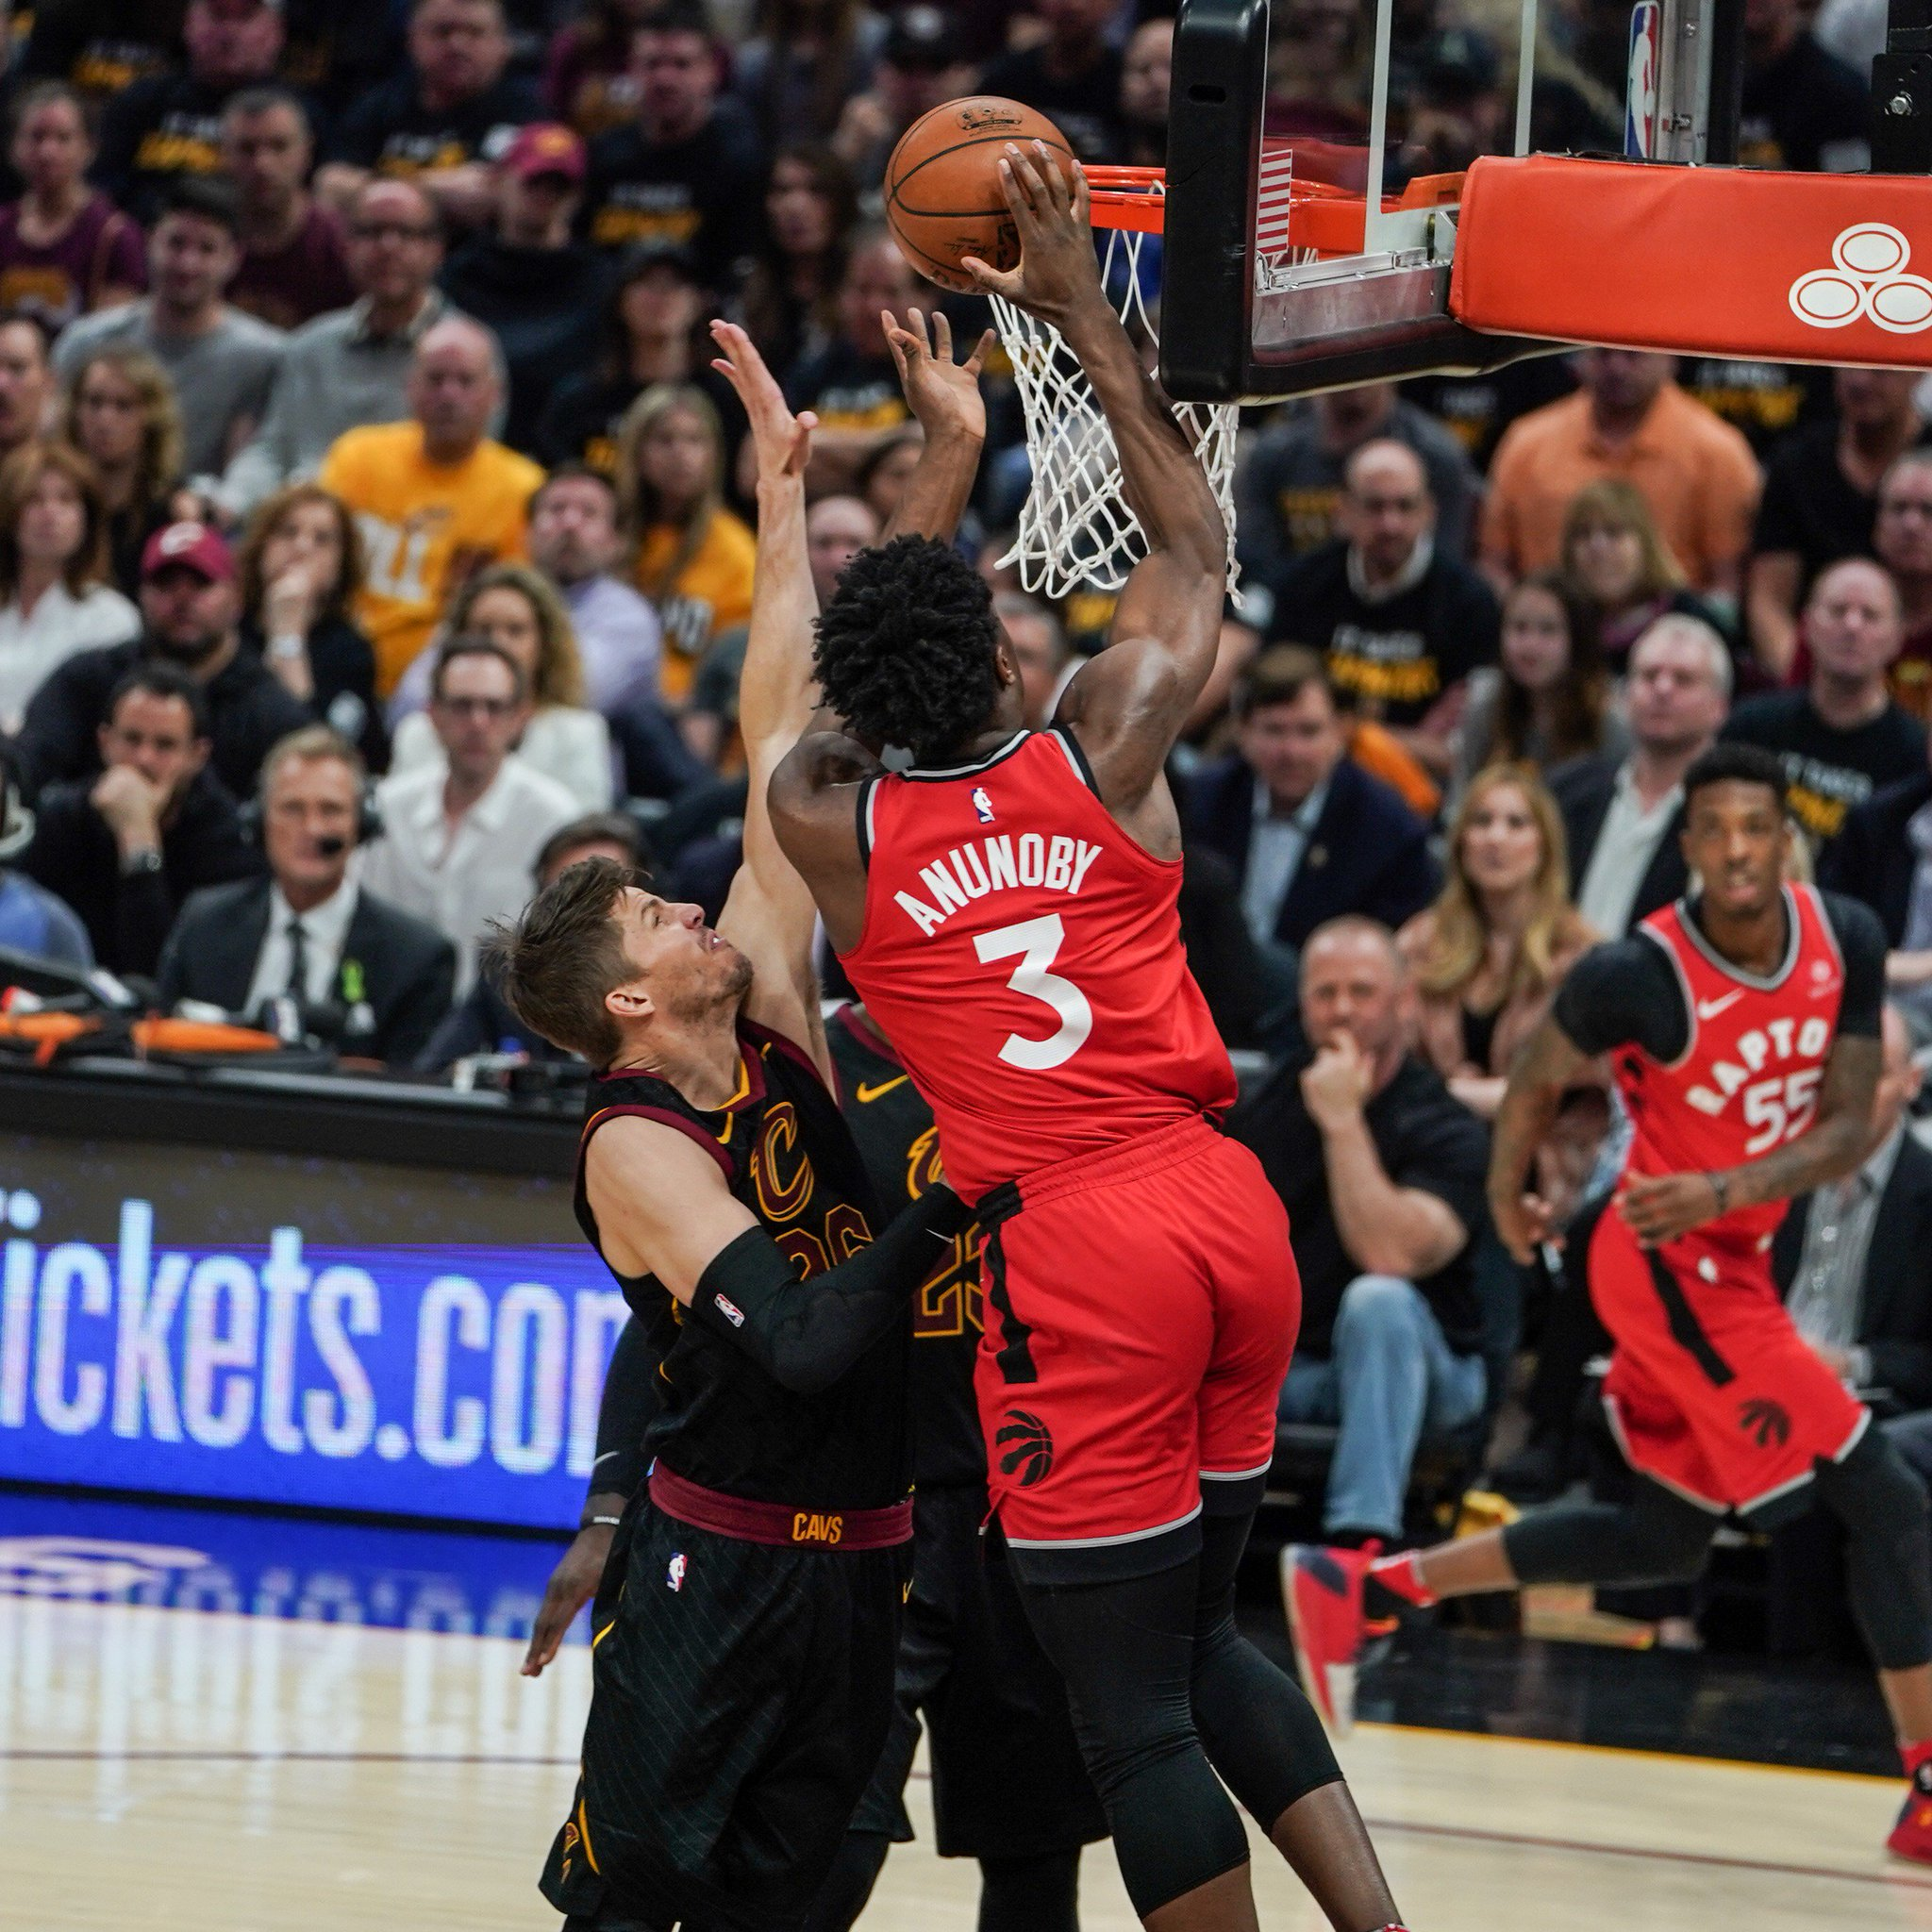 Game 3 @BMO Game Highlights  » https://t.co/RgMUbL7Ds4 https://t.co/OVIRFwSU0P